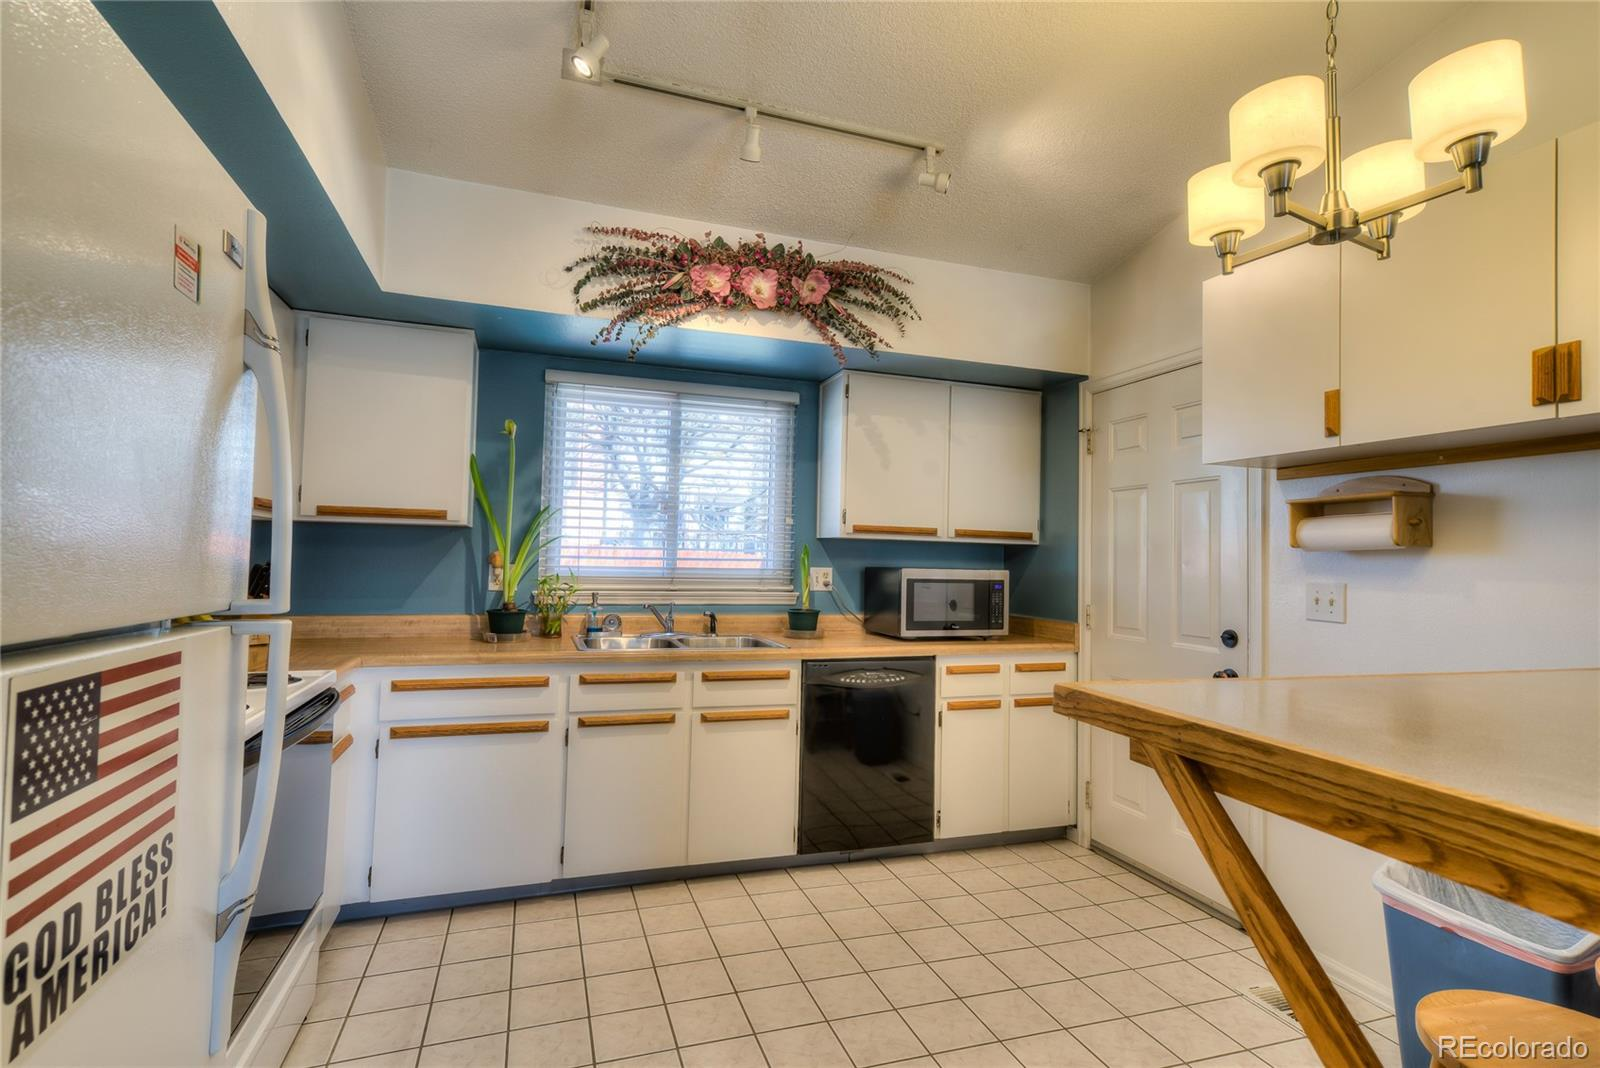 MLS# 2811379 - 8 - 9645 W David Avenue, Littleton, CO 80128